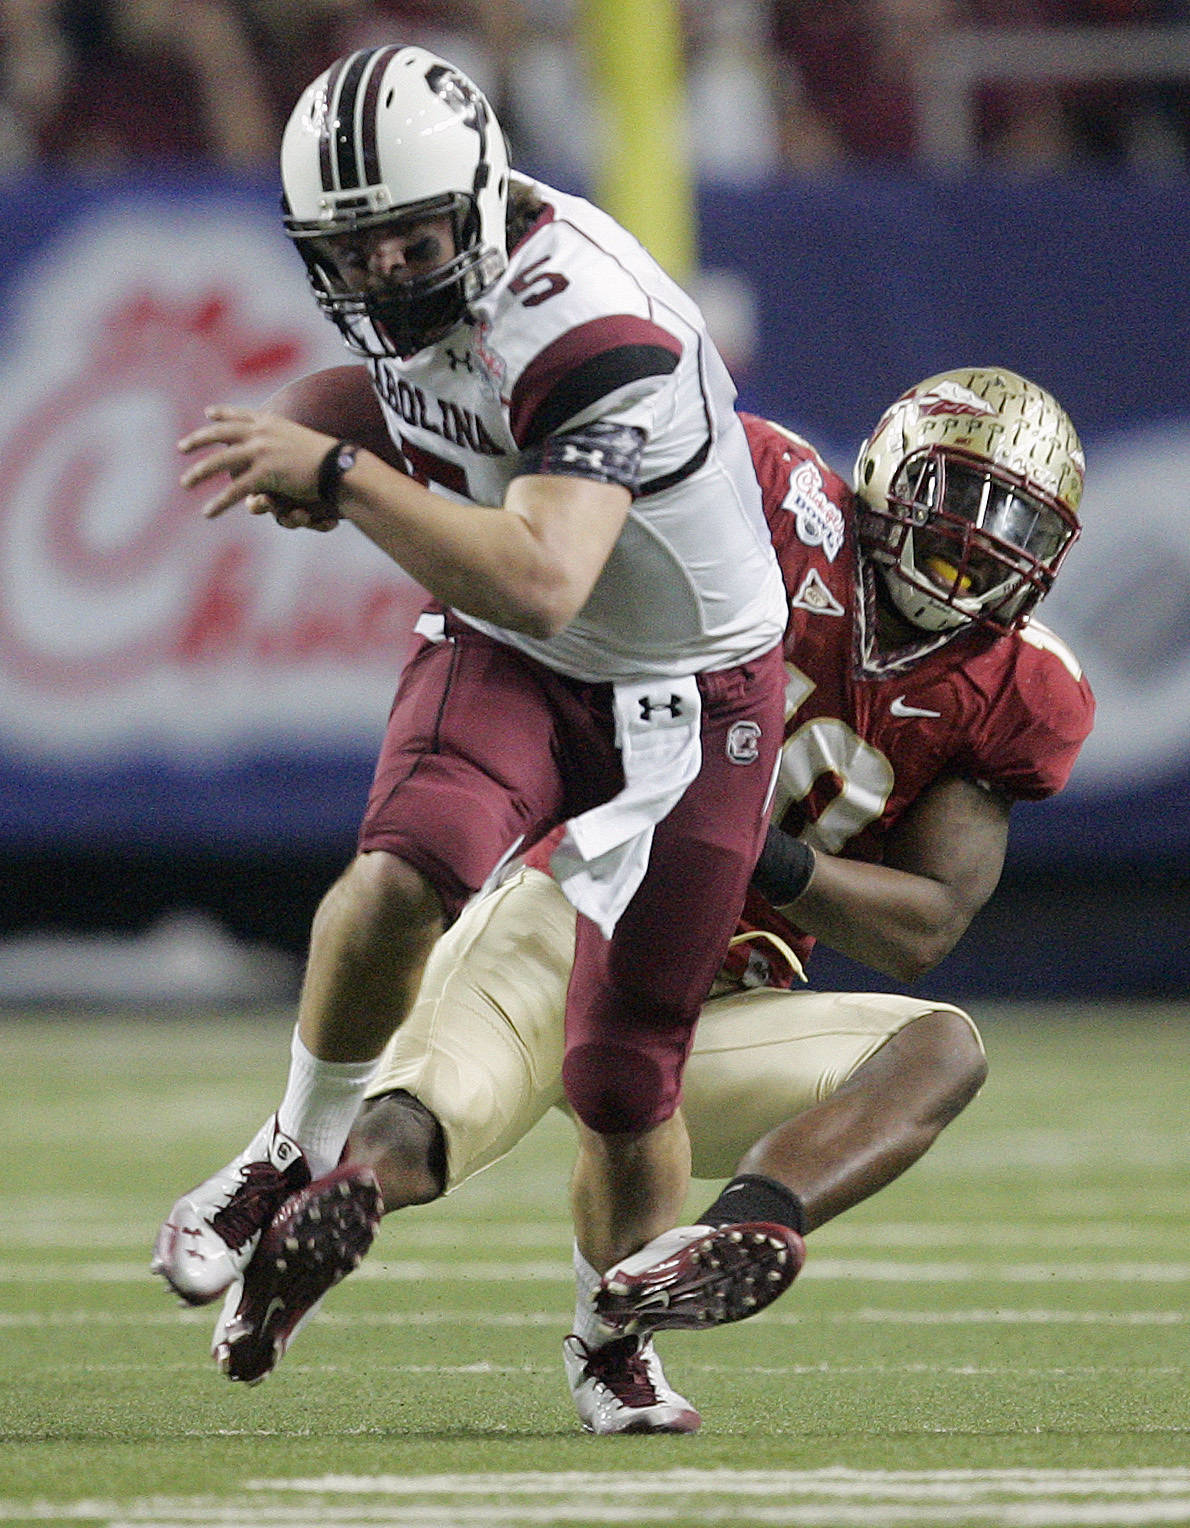 South Carolina quarterback Stephen Garcia (5) is stopped by Florida State safety Nick Moody (10) in the second quarter of the Chick-fil-A Bowl NCAA college football game on Friday, Dec. 31, 2010, in Atlanta. (AP Photo/John Amis)